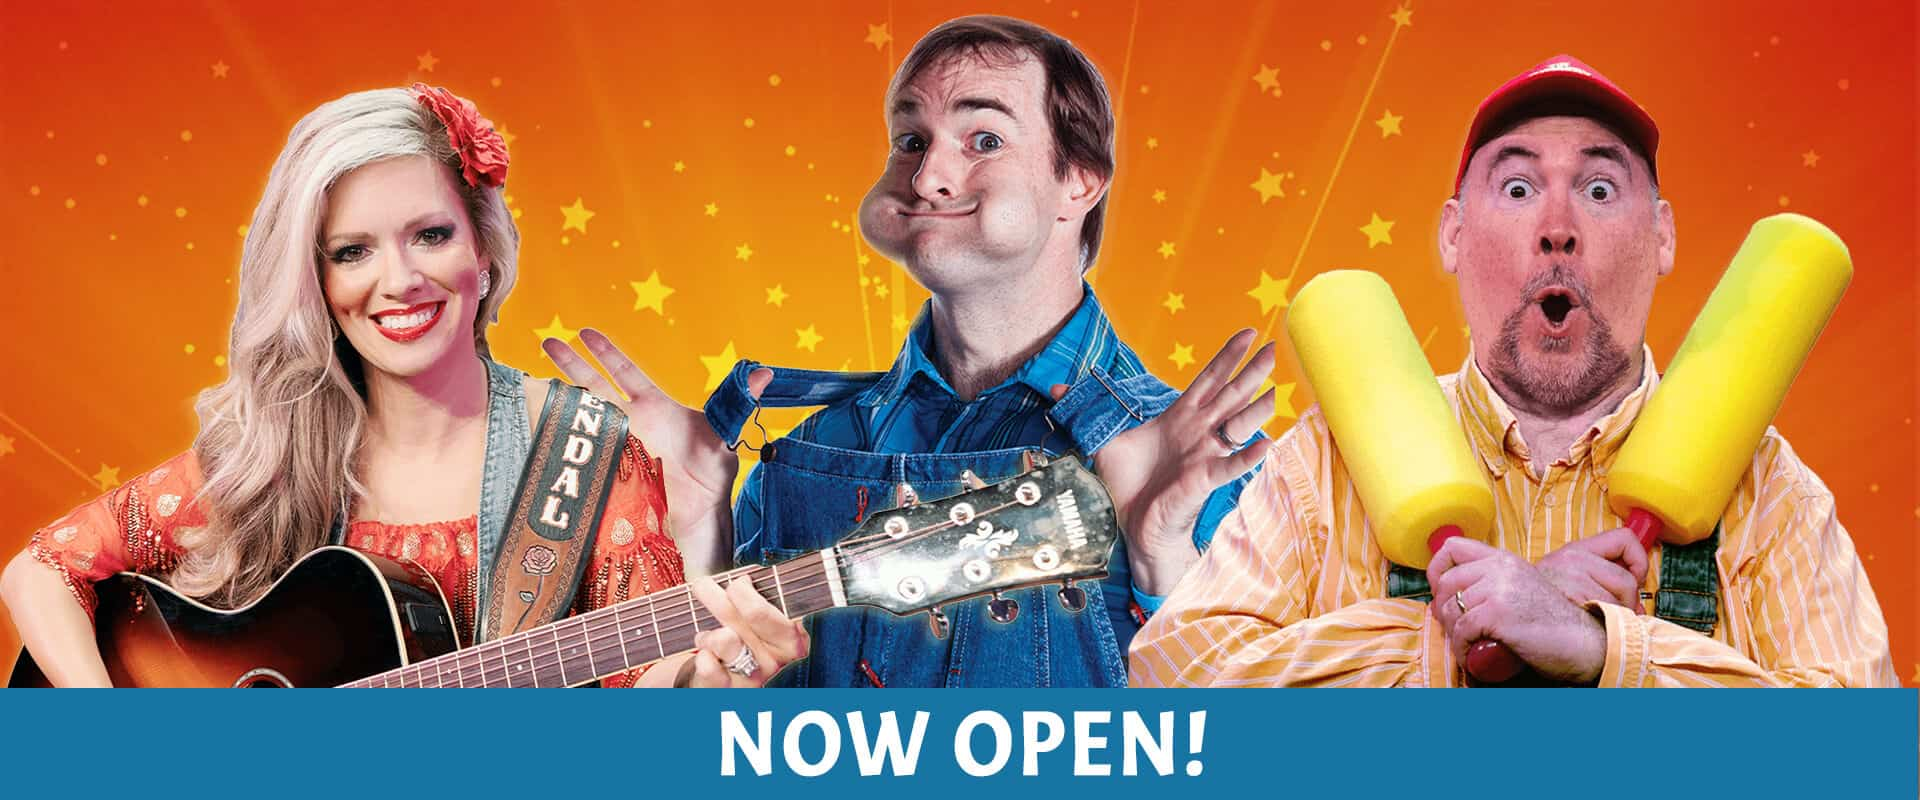 The Comedy Barn is Now Open!